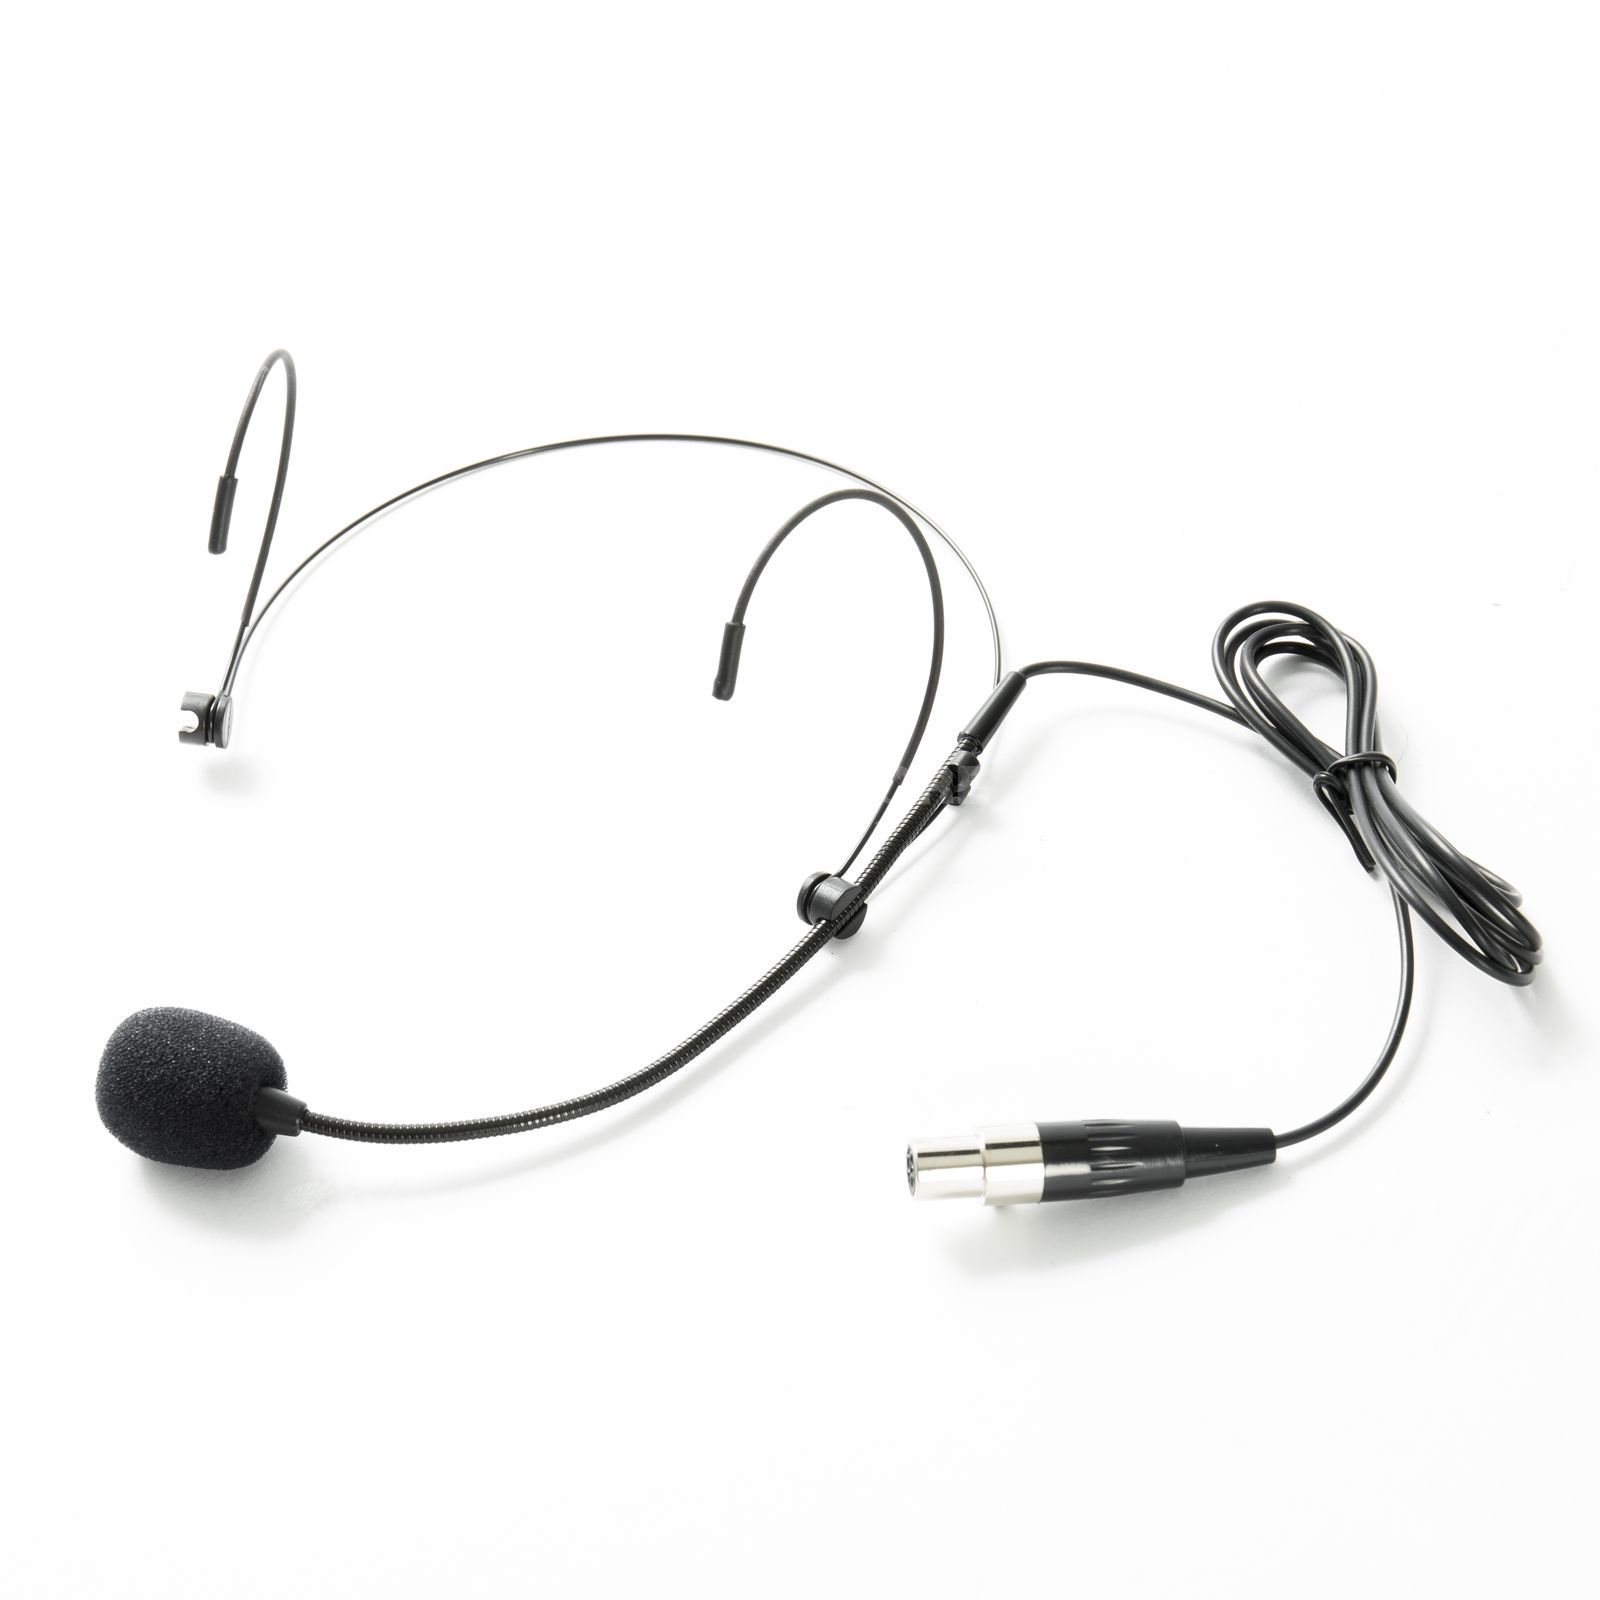 Fame audio MSW Pro HS Basic Headset, mini XLR, black Product Image